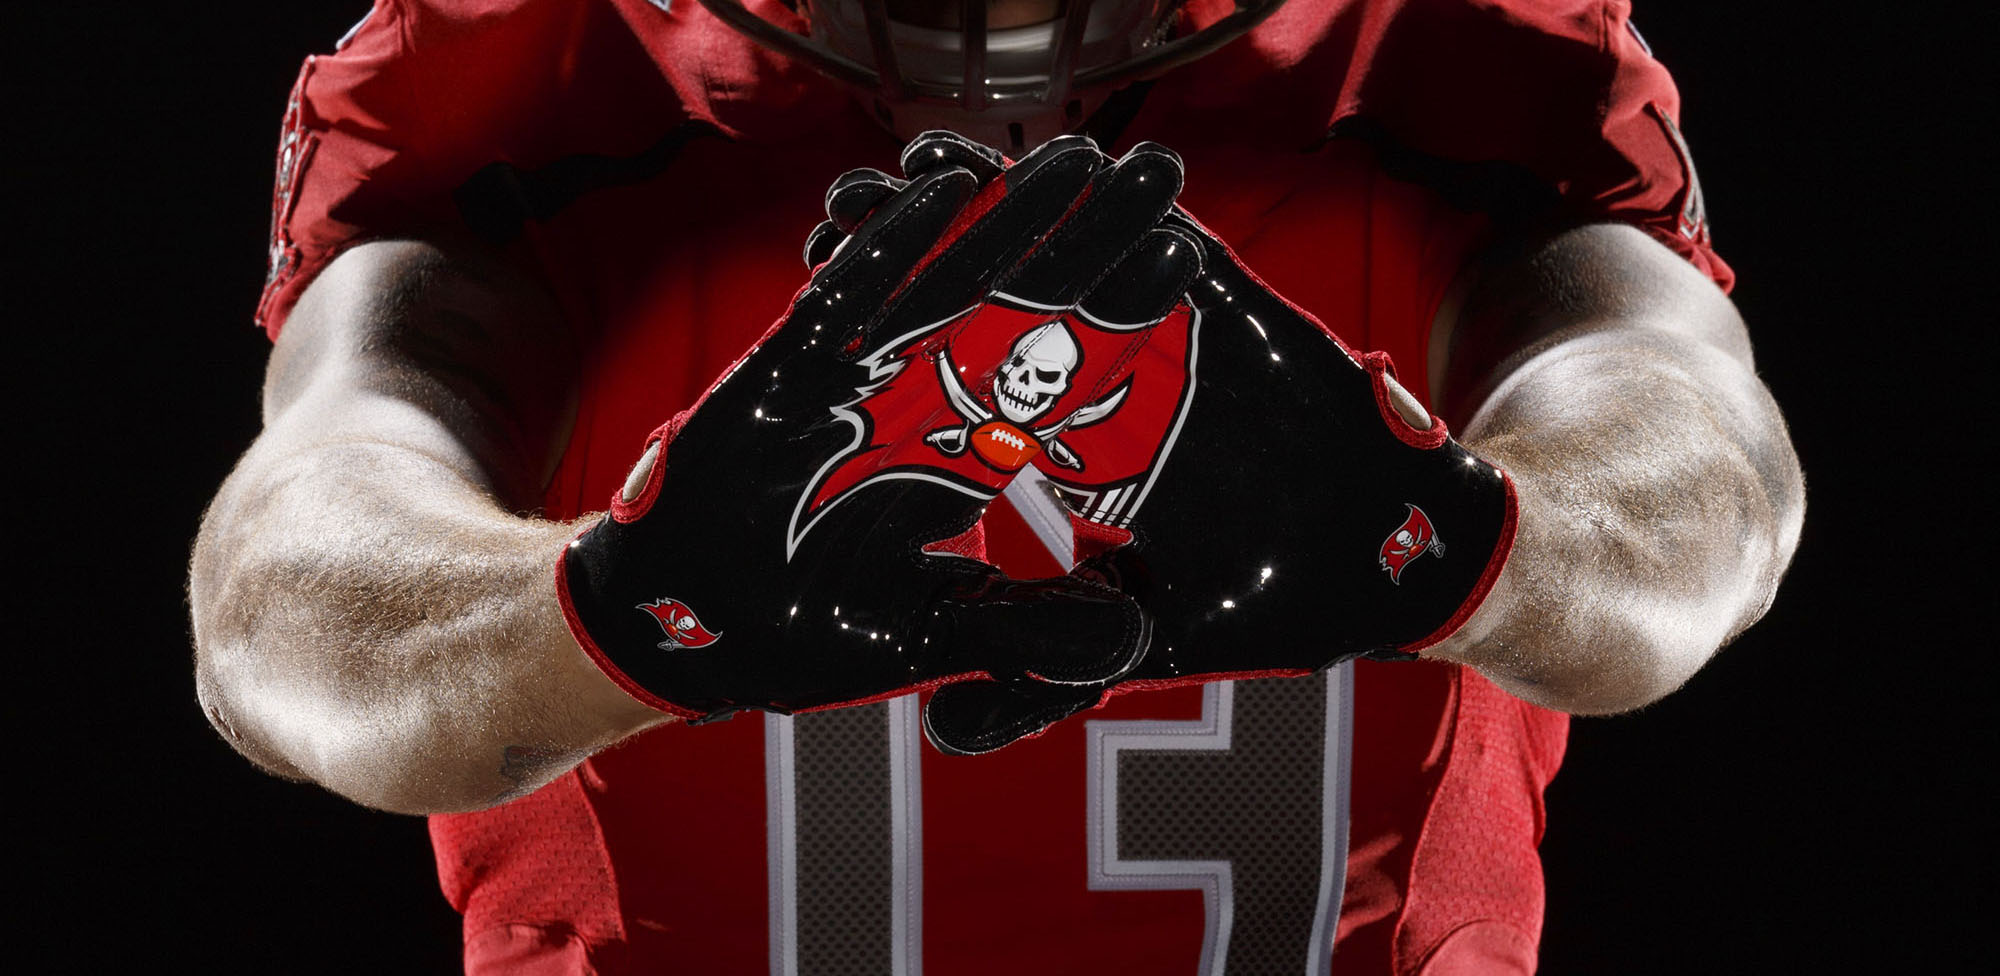 Buccaneers Nike Color Rush Uniform Photo Shoot - Advertising   Commercial  Photographer f6109dce9